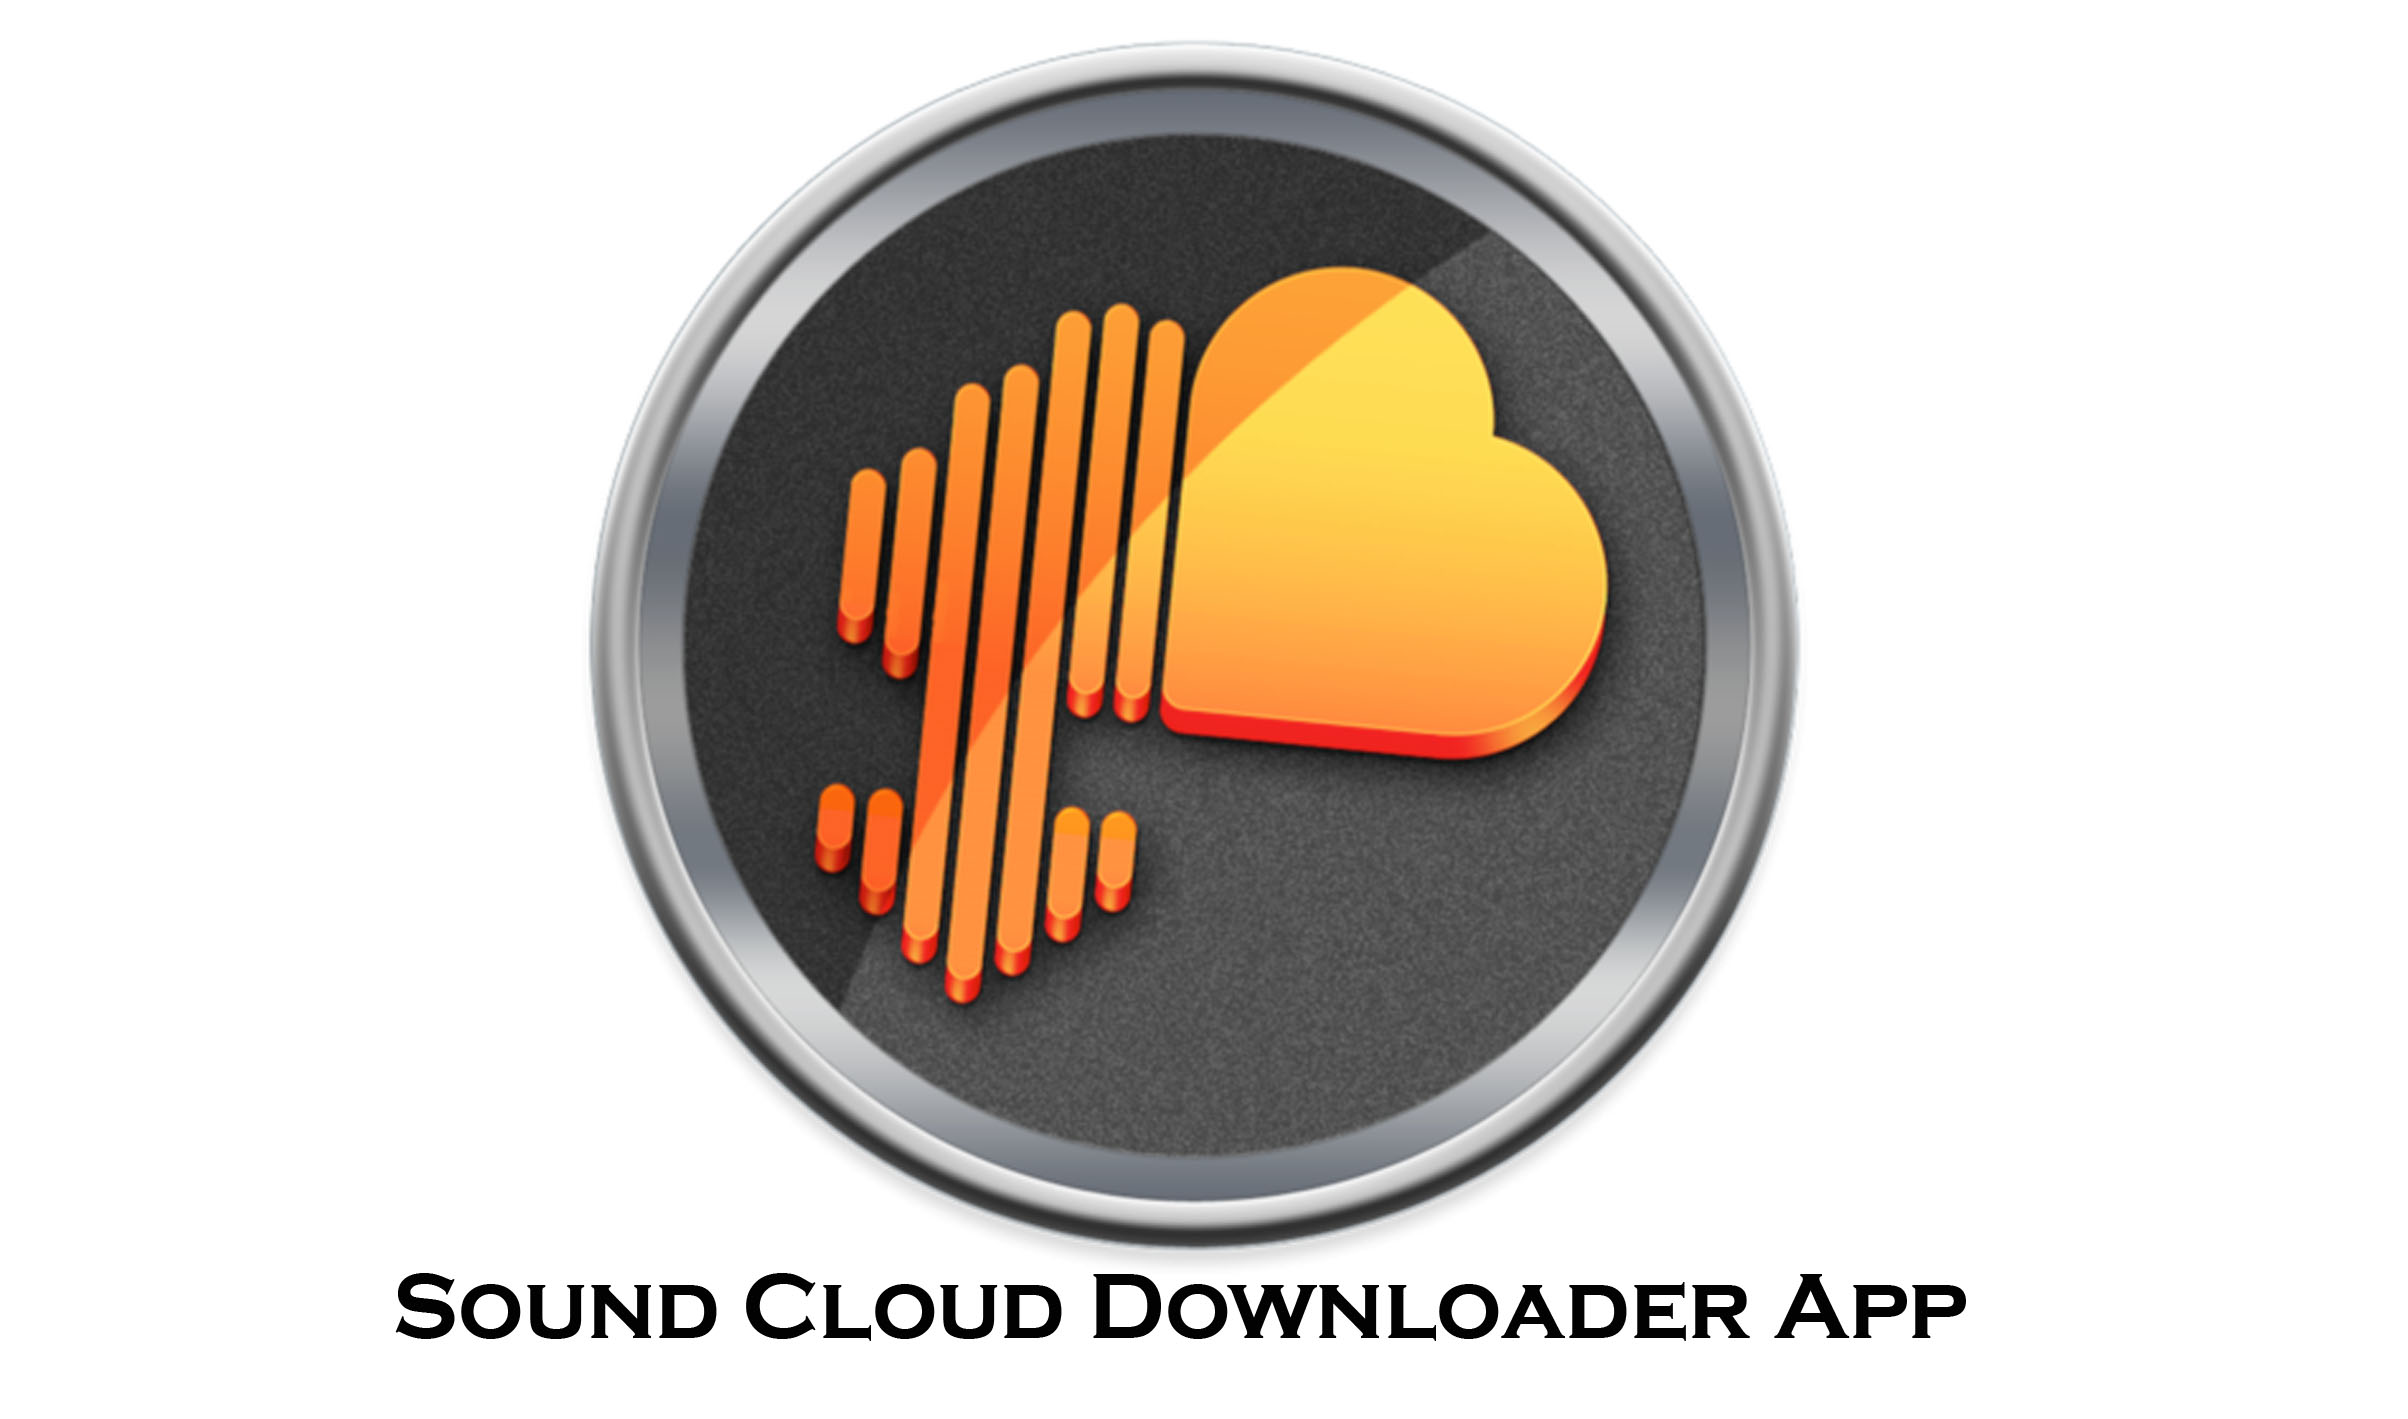 Sound Cloud Downloader App - SoundCloud Account